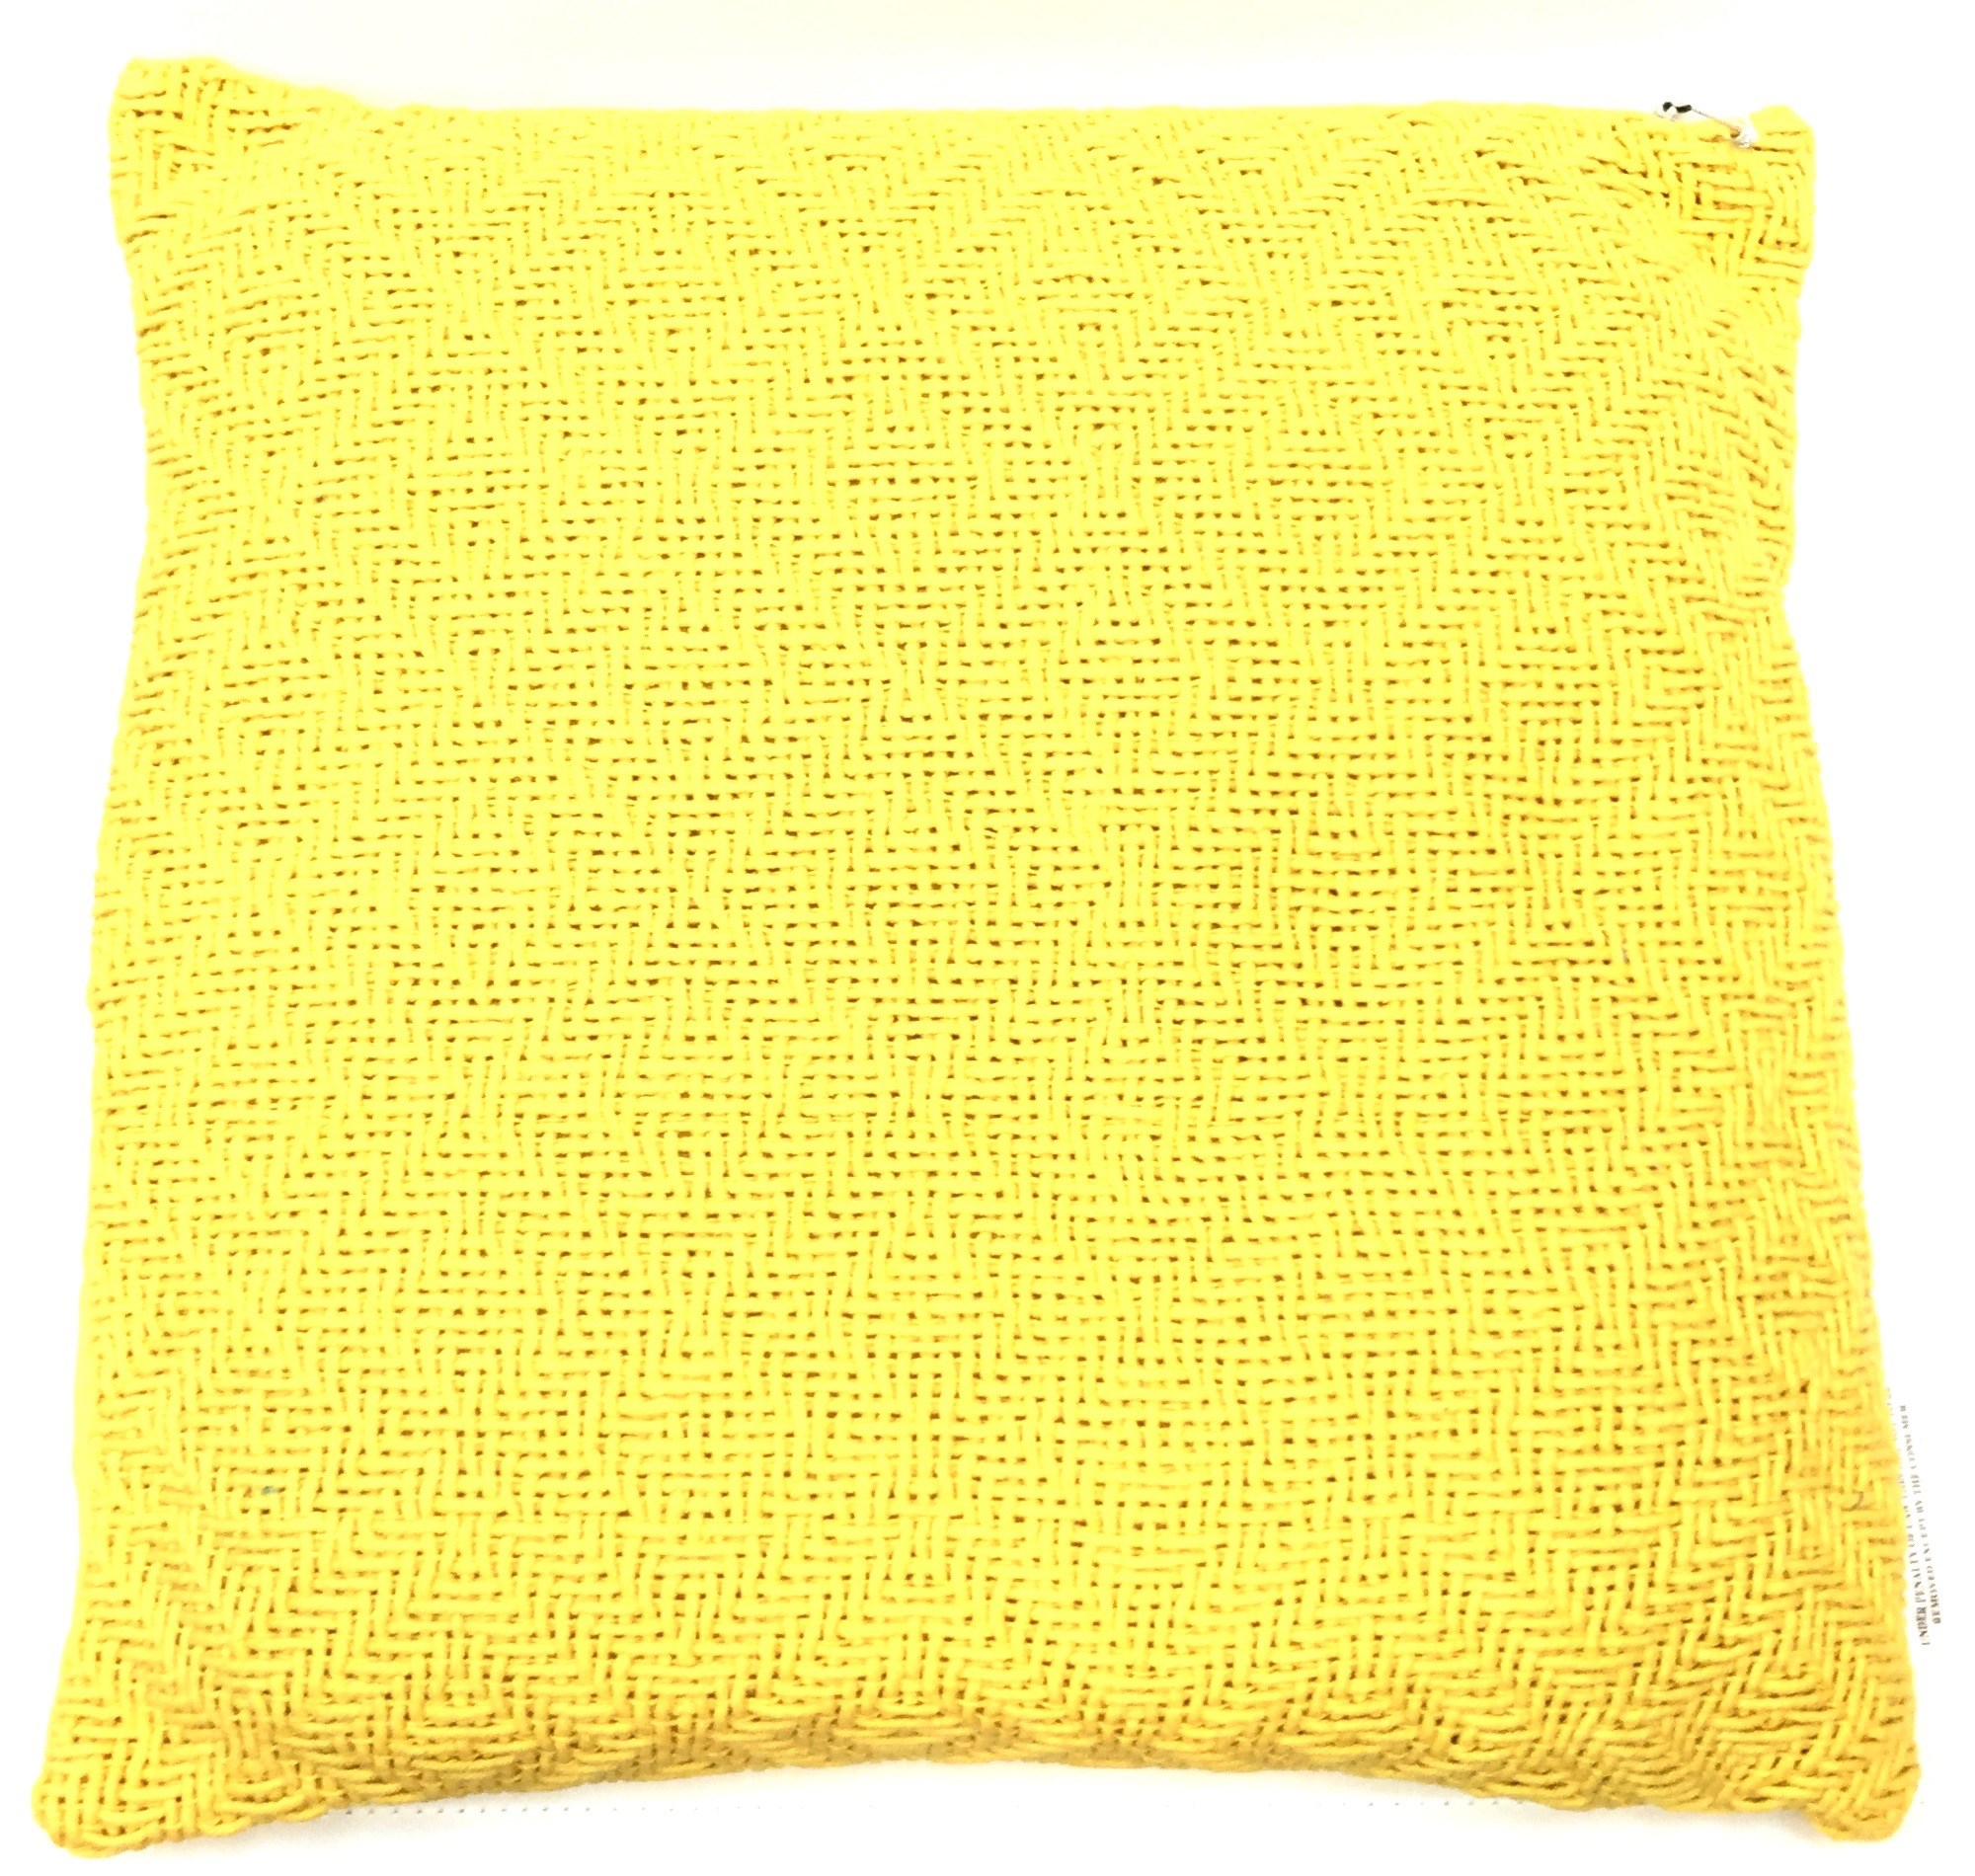 (543-548-553) 18x18 Chelsea Pillow - Yellow